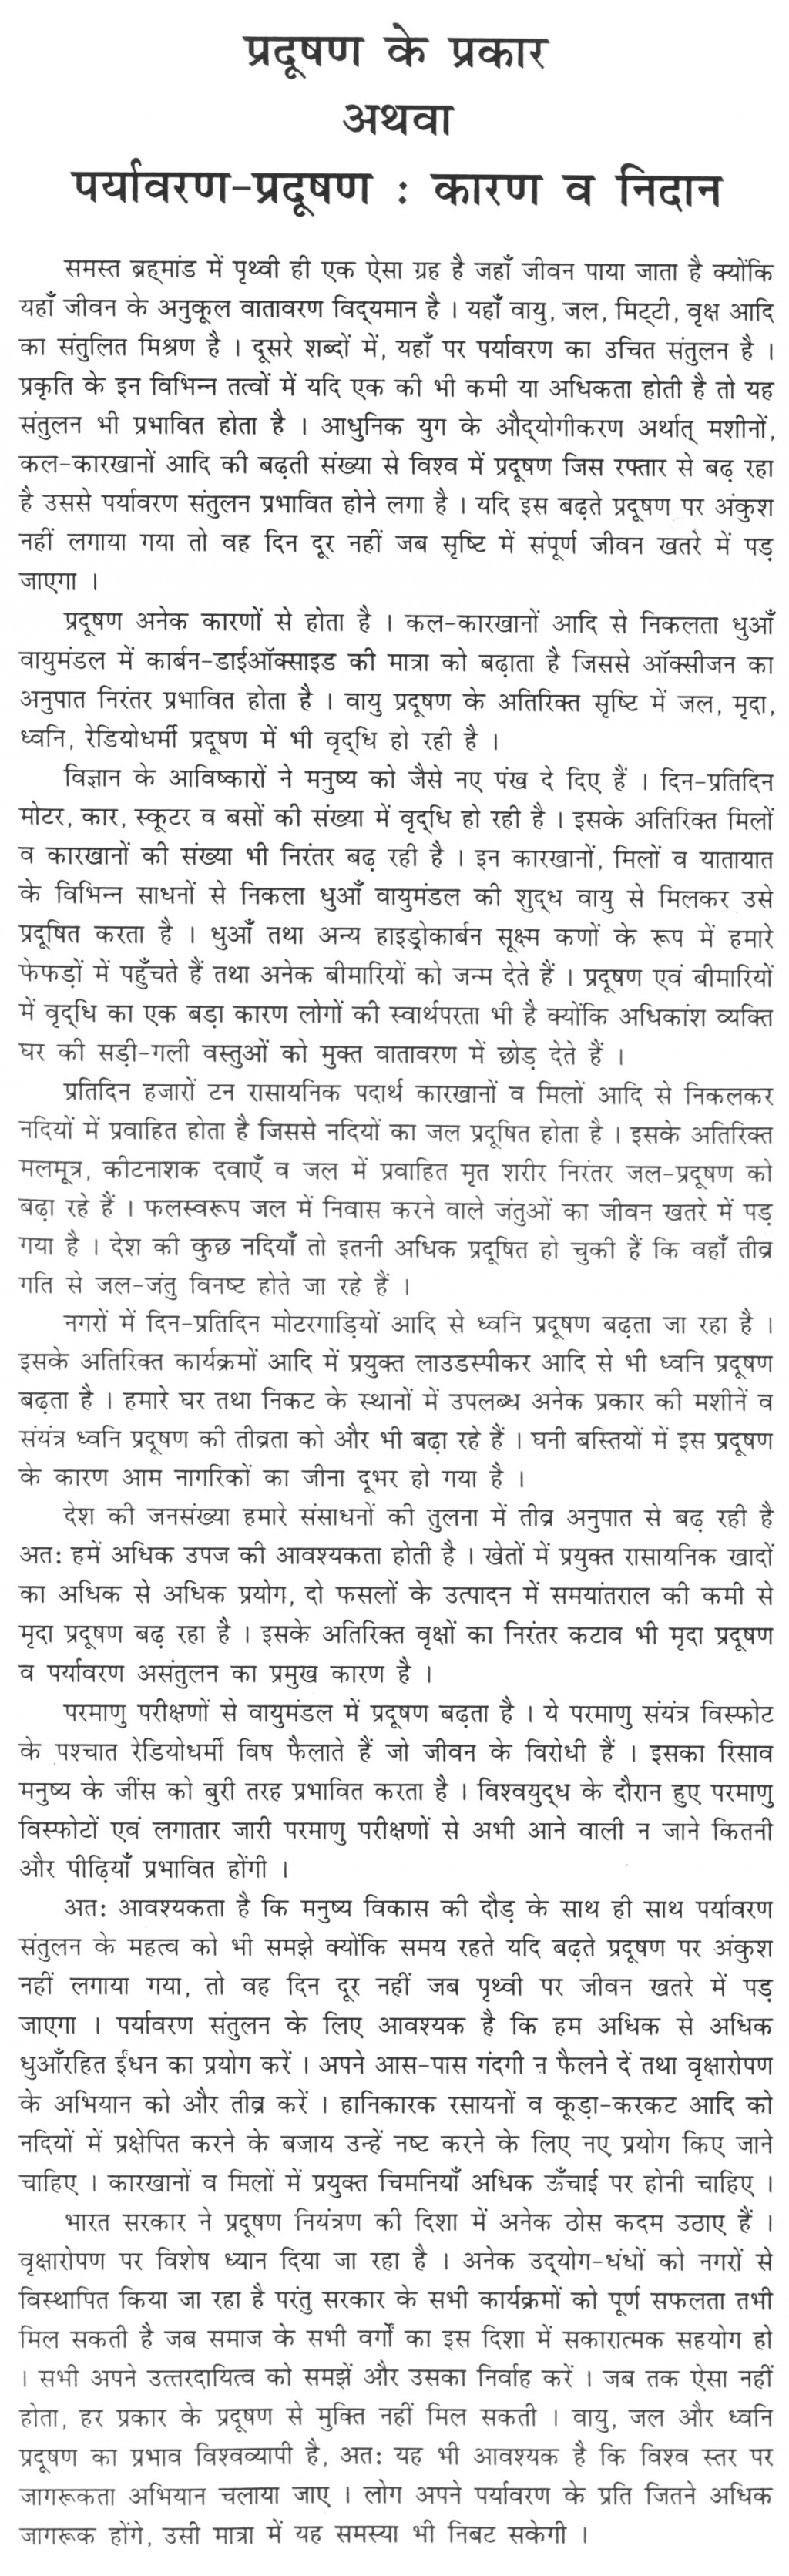 014 Good Habits Essay In Hindi Exceptional Habit Eating And Bad Large